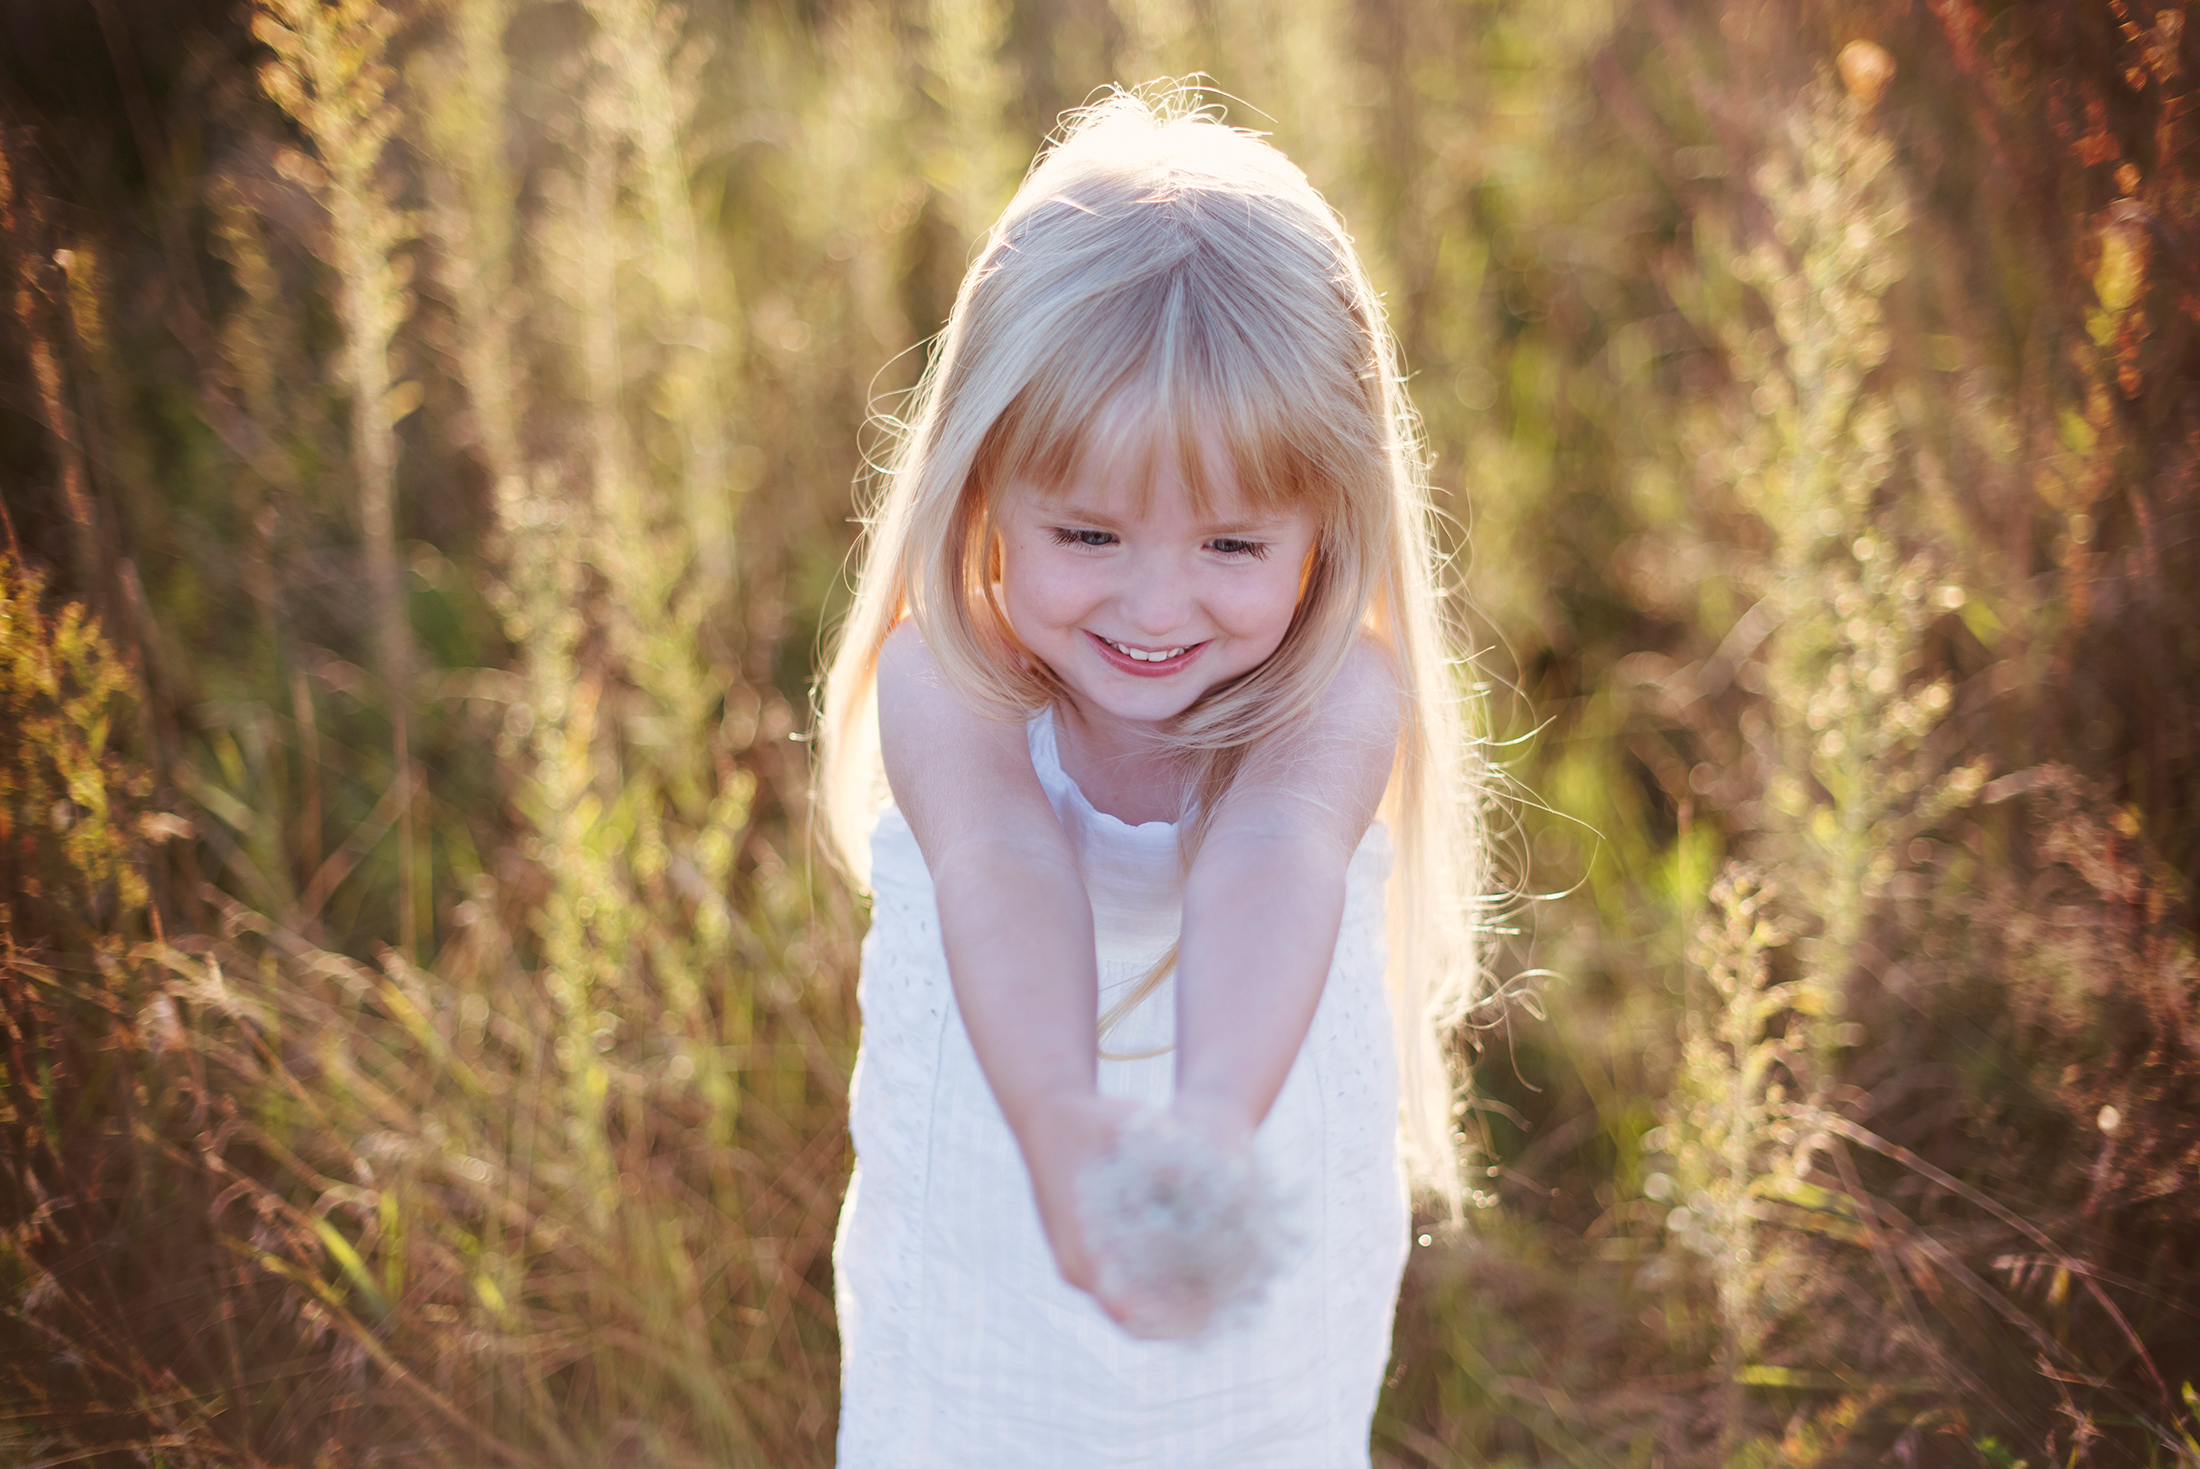 Child-Photography-Stow-MA-ChaseTheGlowPhoto.jpg